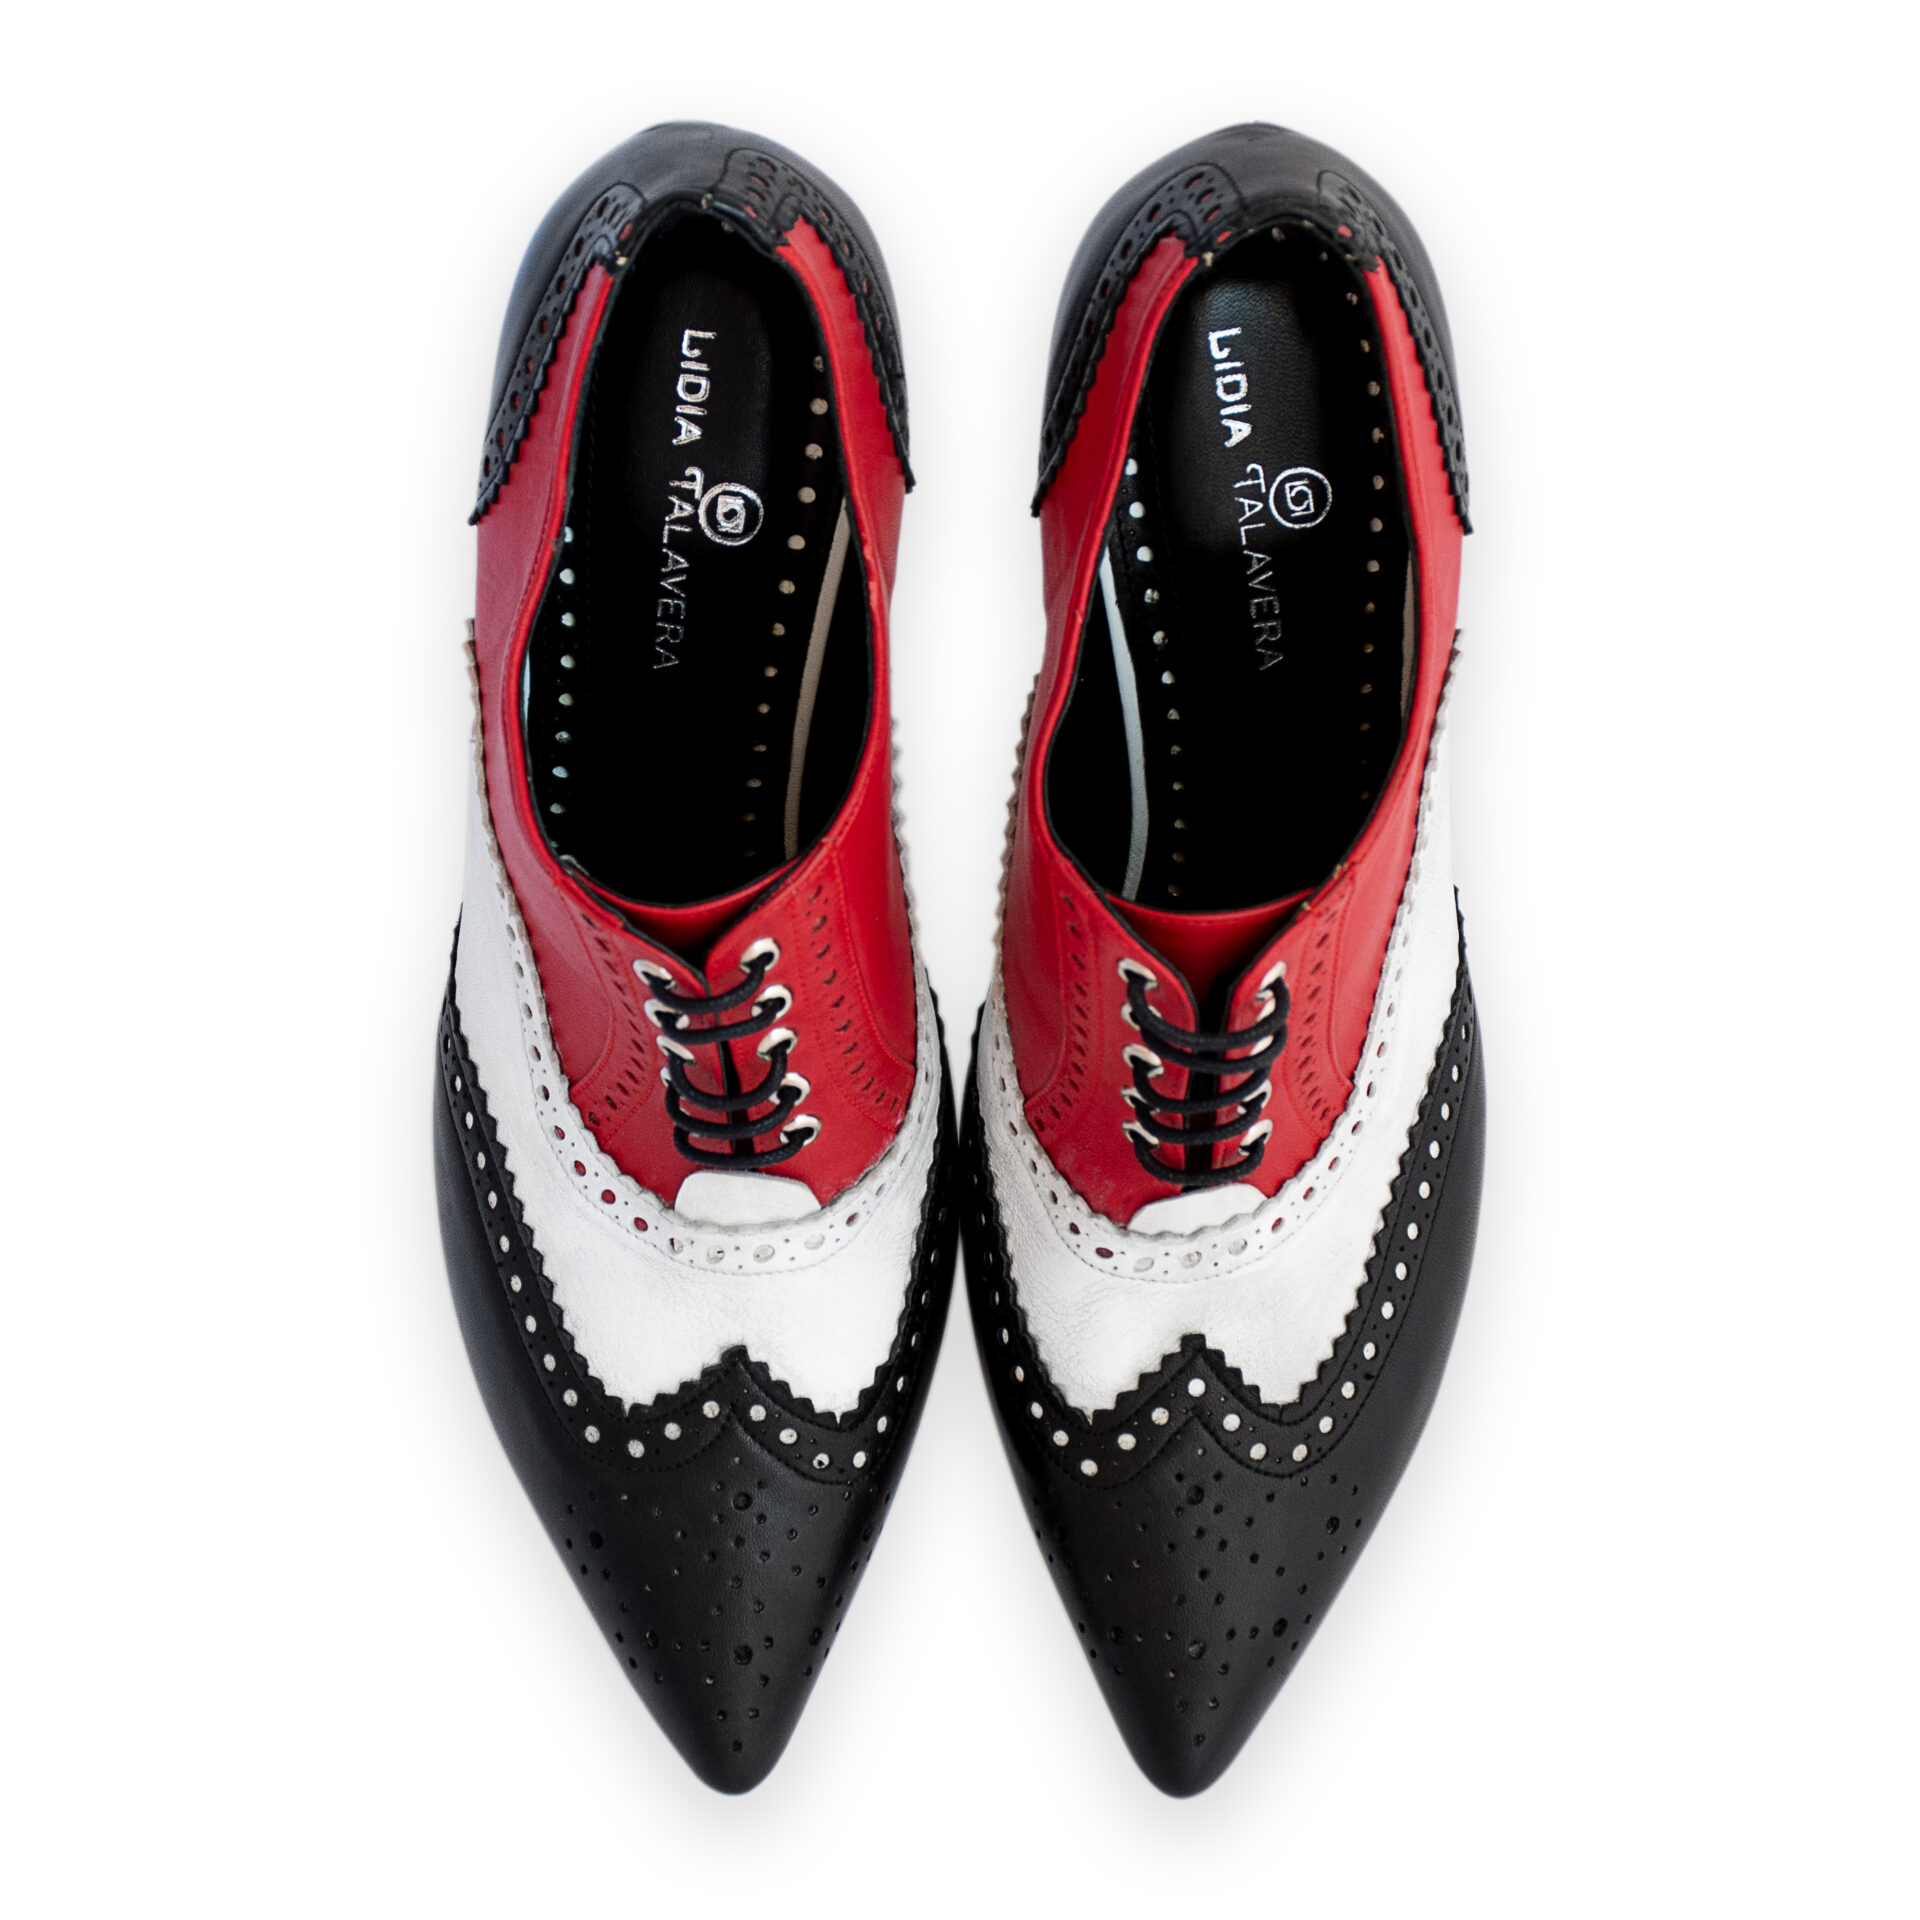 Oxford high heels for men and women